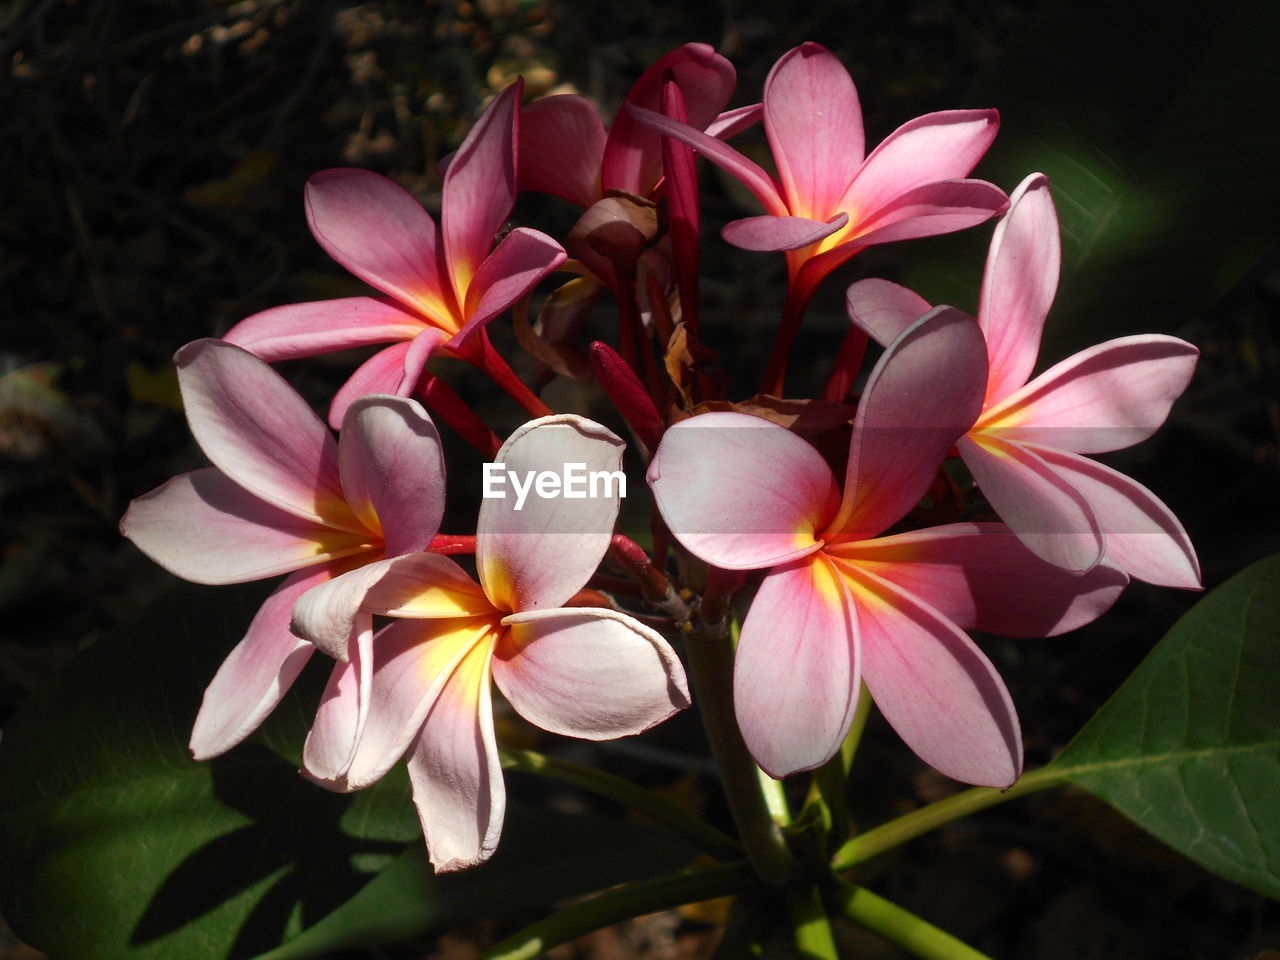 flower, petal, growth, beauty in nature, nature, plant, fragility, freshness, flower head, no people, outdoors, blooming, day, close-up, frangipani